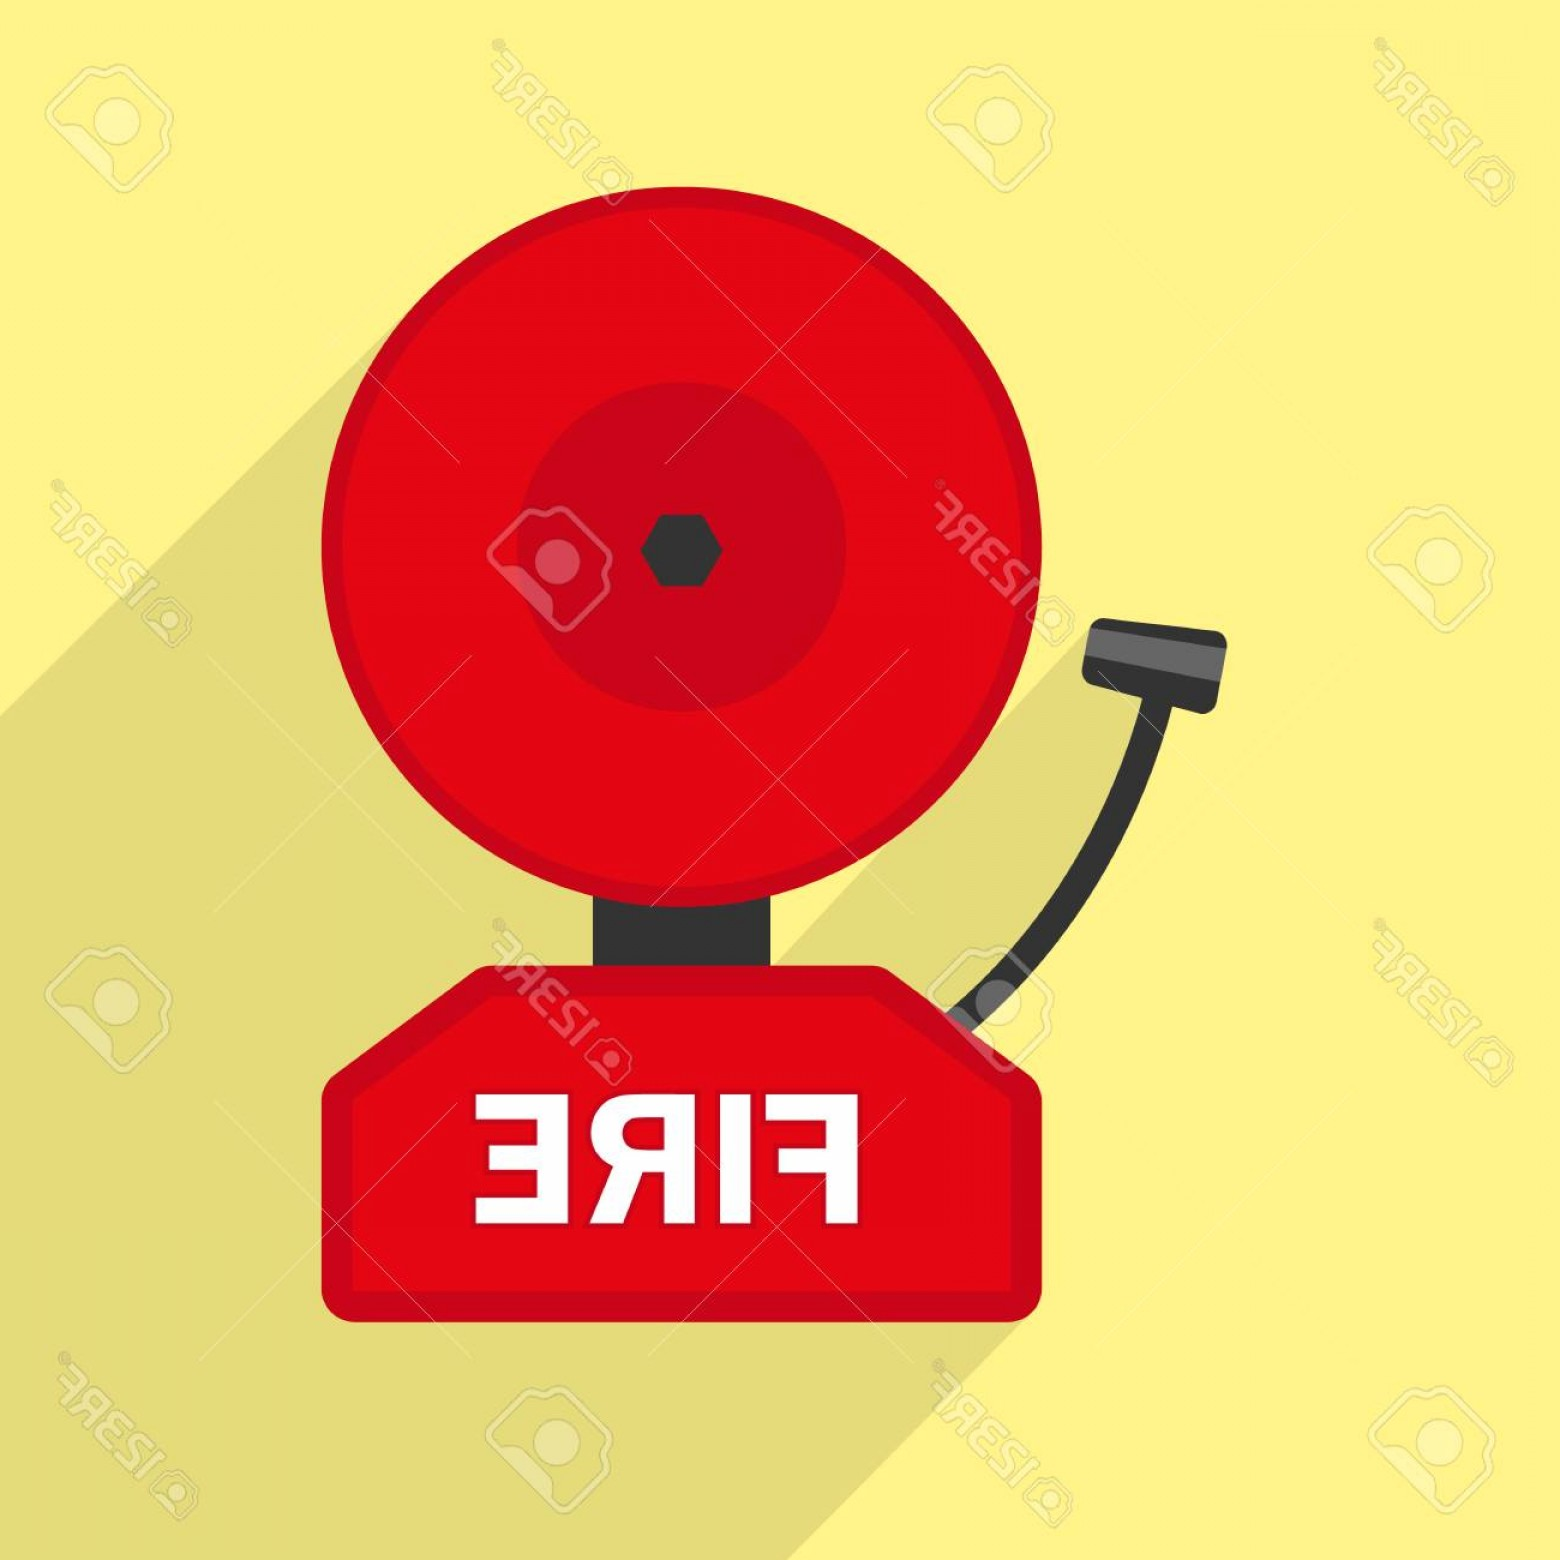 Fire Alarm Vector: Photostock Vector Fire Alarm Icon Flat Illustration Of Fire Alarm Vector Icon For Web Design